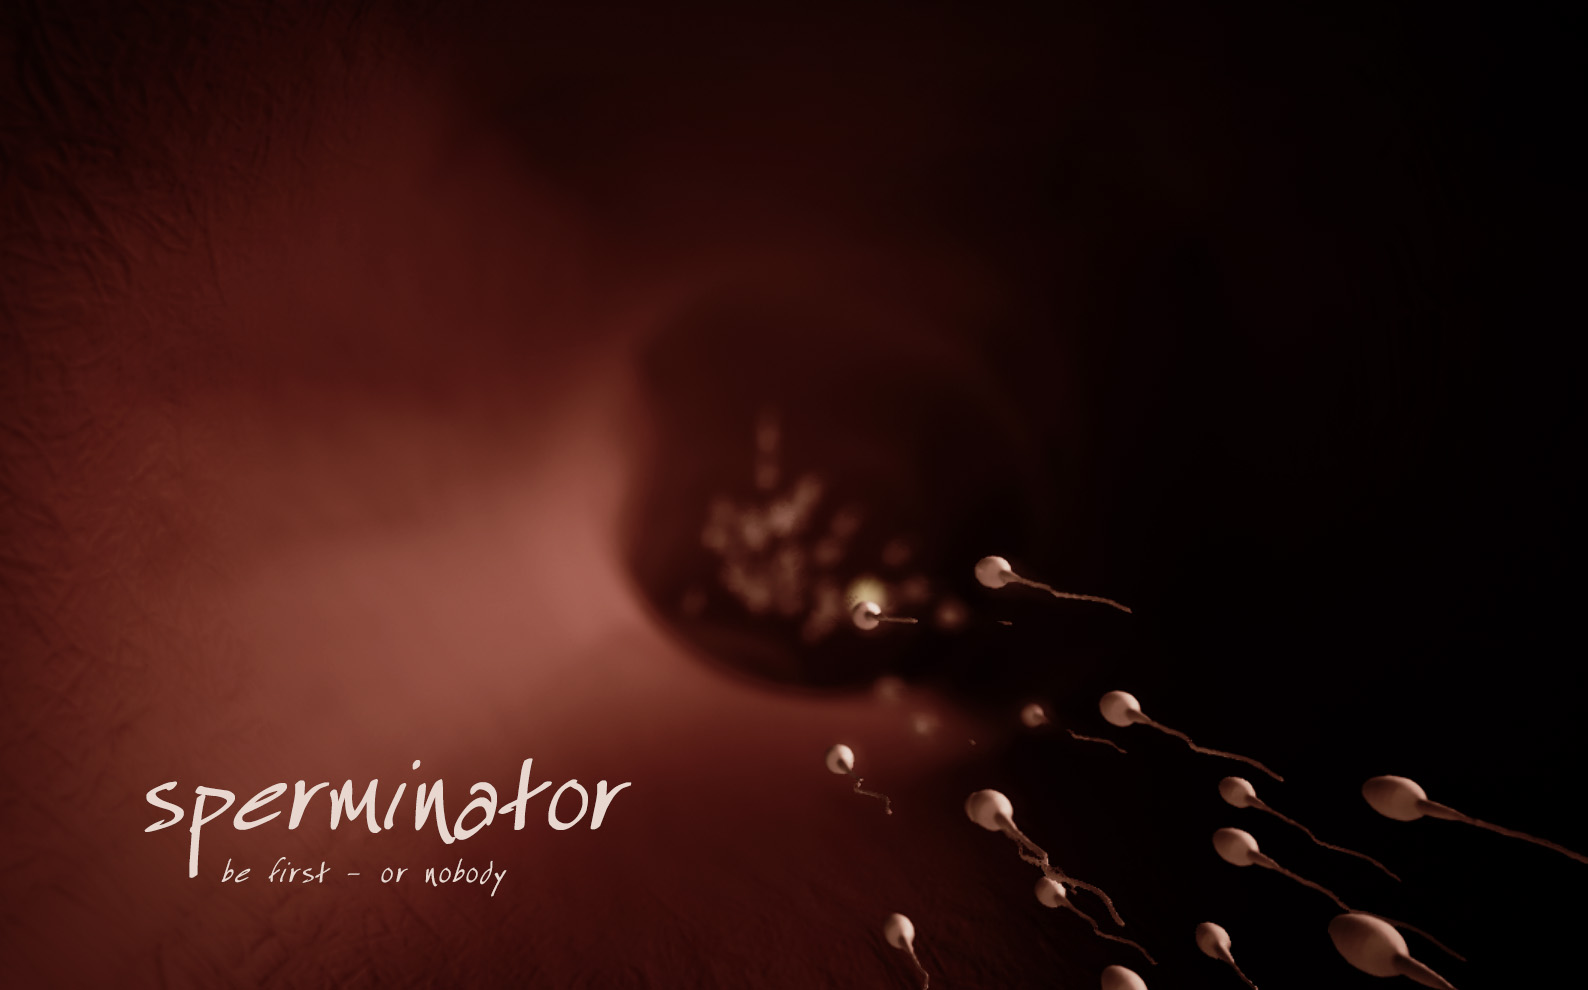 Sperminator - be first or nobody